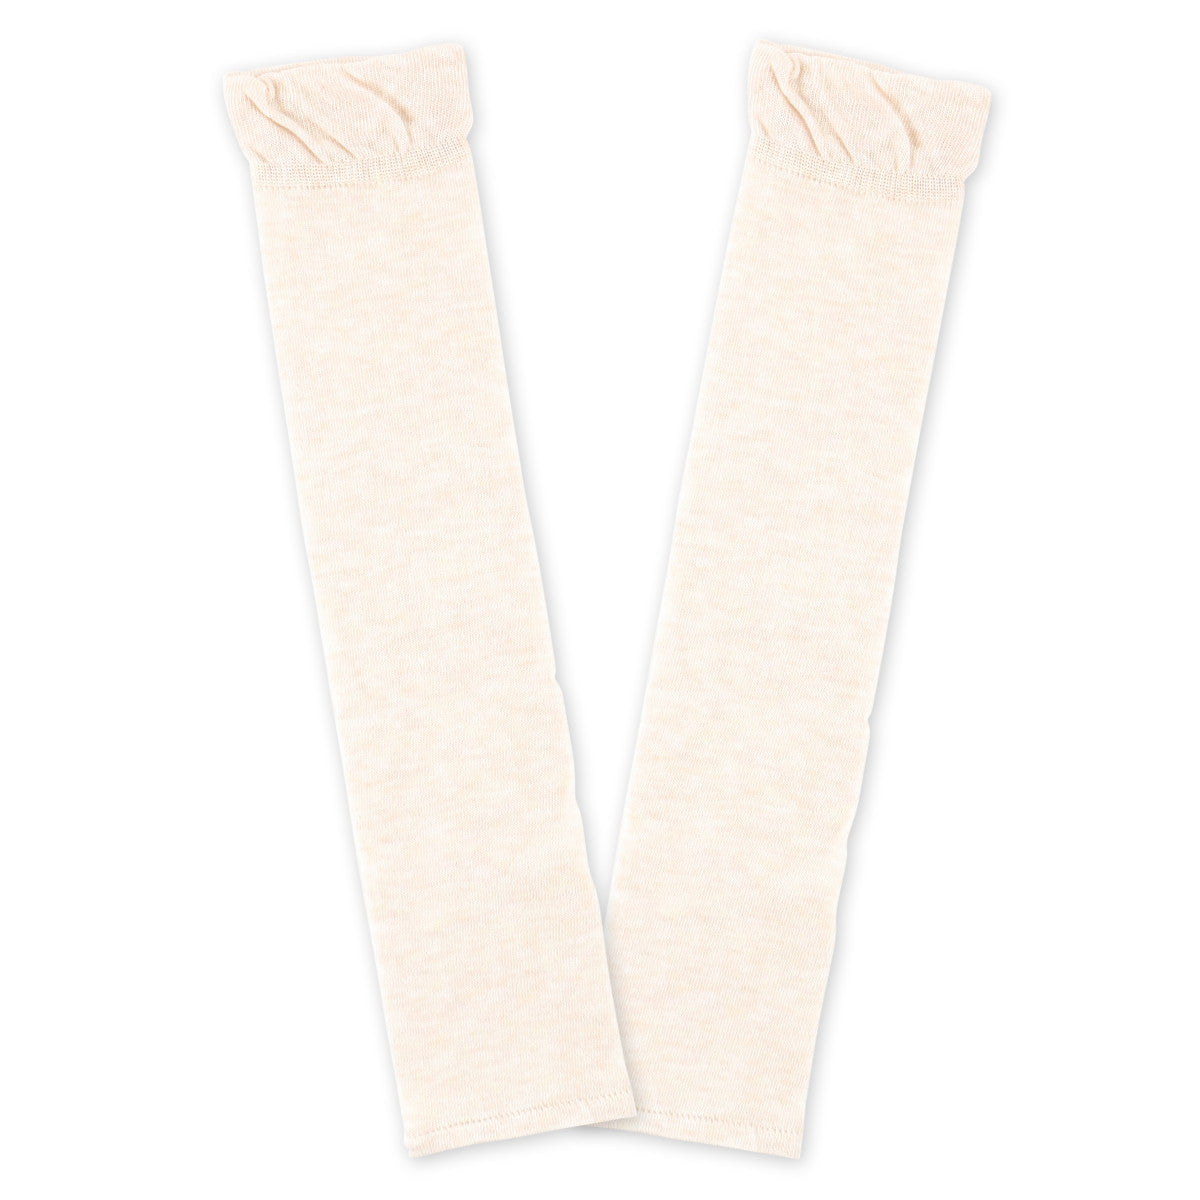 Prevent-the-chill Legwarmers | Beige - CHERRYSTONE